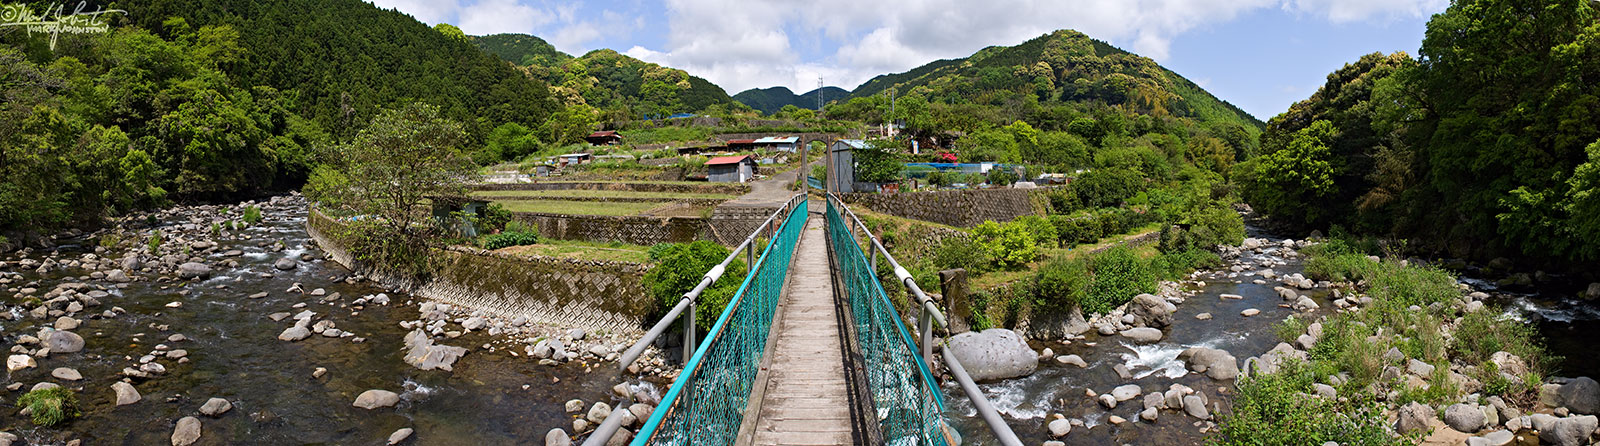 """Footbridge across the Kawazu River [河津川] above Yugano[湯ヶ野], Shizuoka Prefecture [静岡県], Japan. For a video and music I composed about my many hours in these beautiful mountains,  click here and scroll down the page that opens to find """"Amagisan Doro """"."""